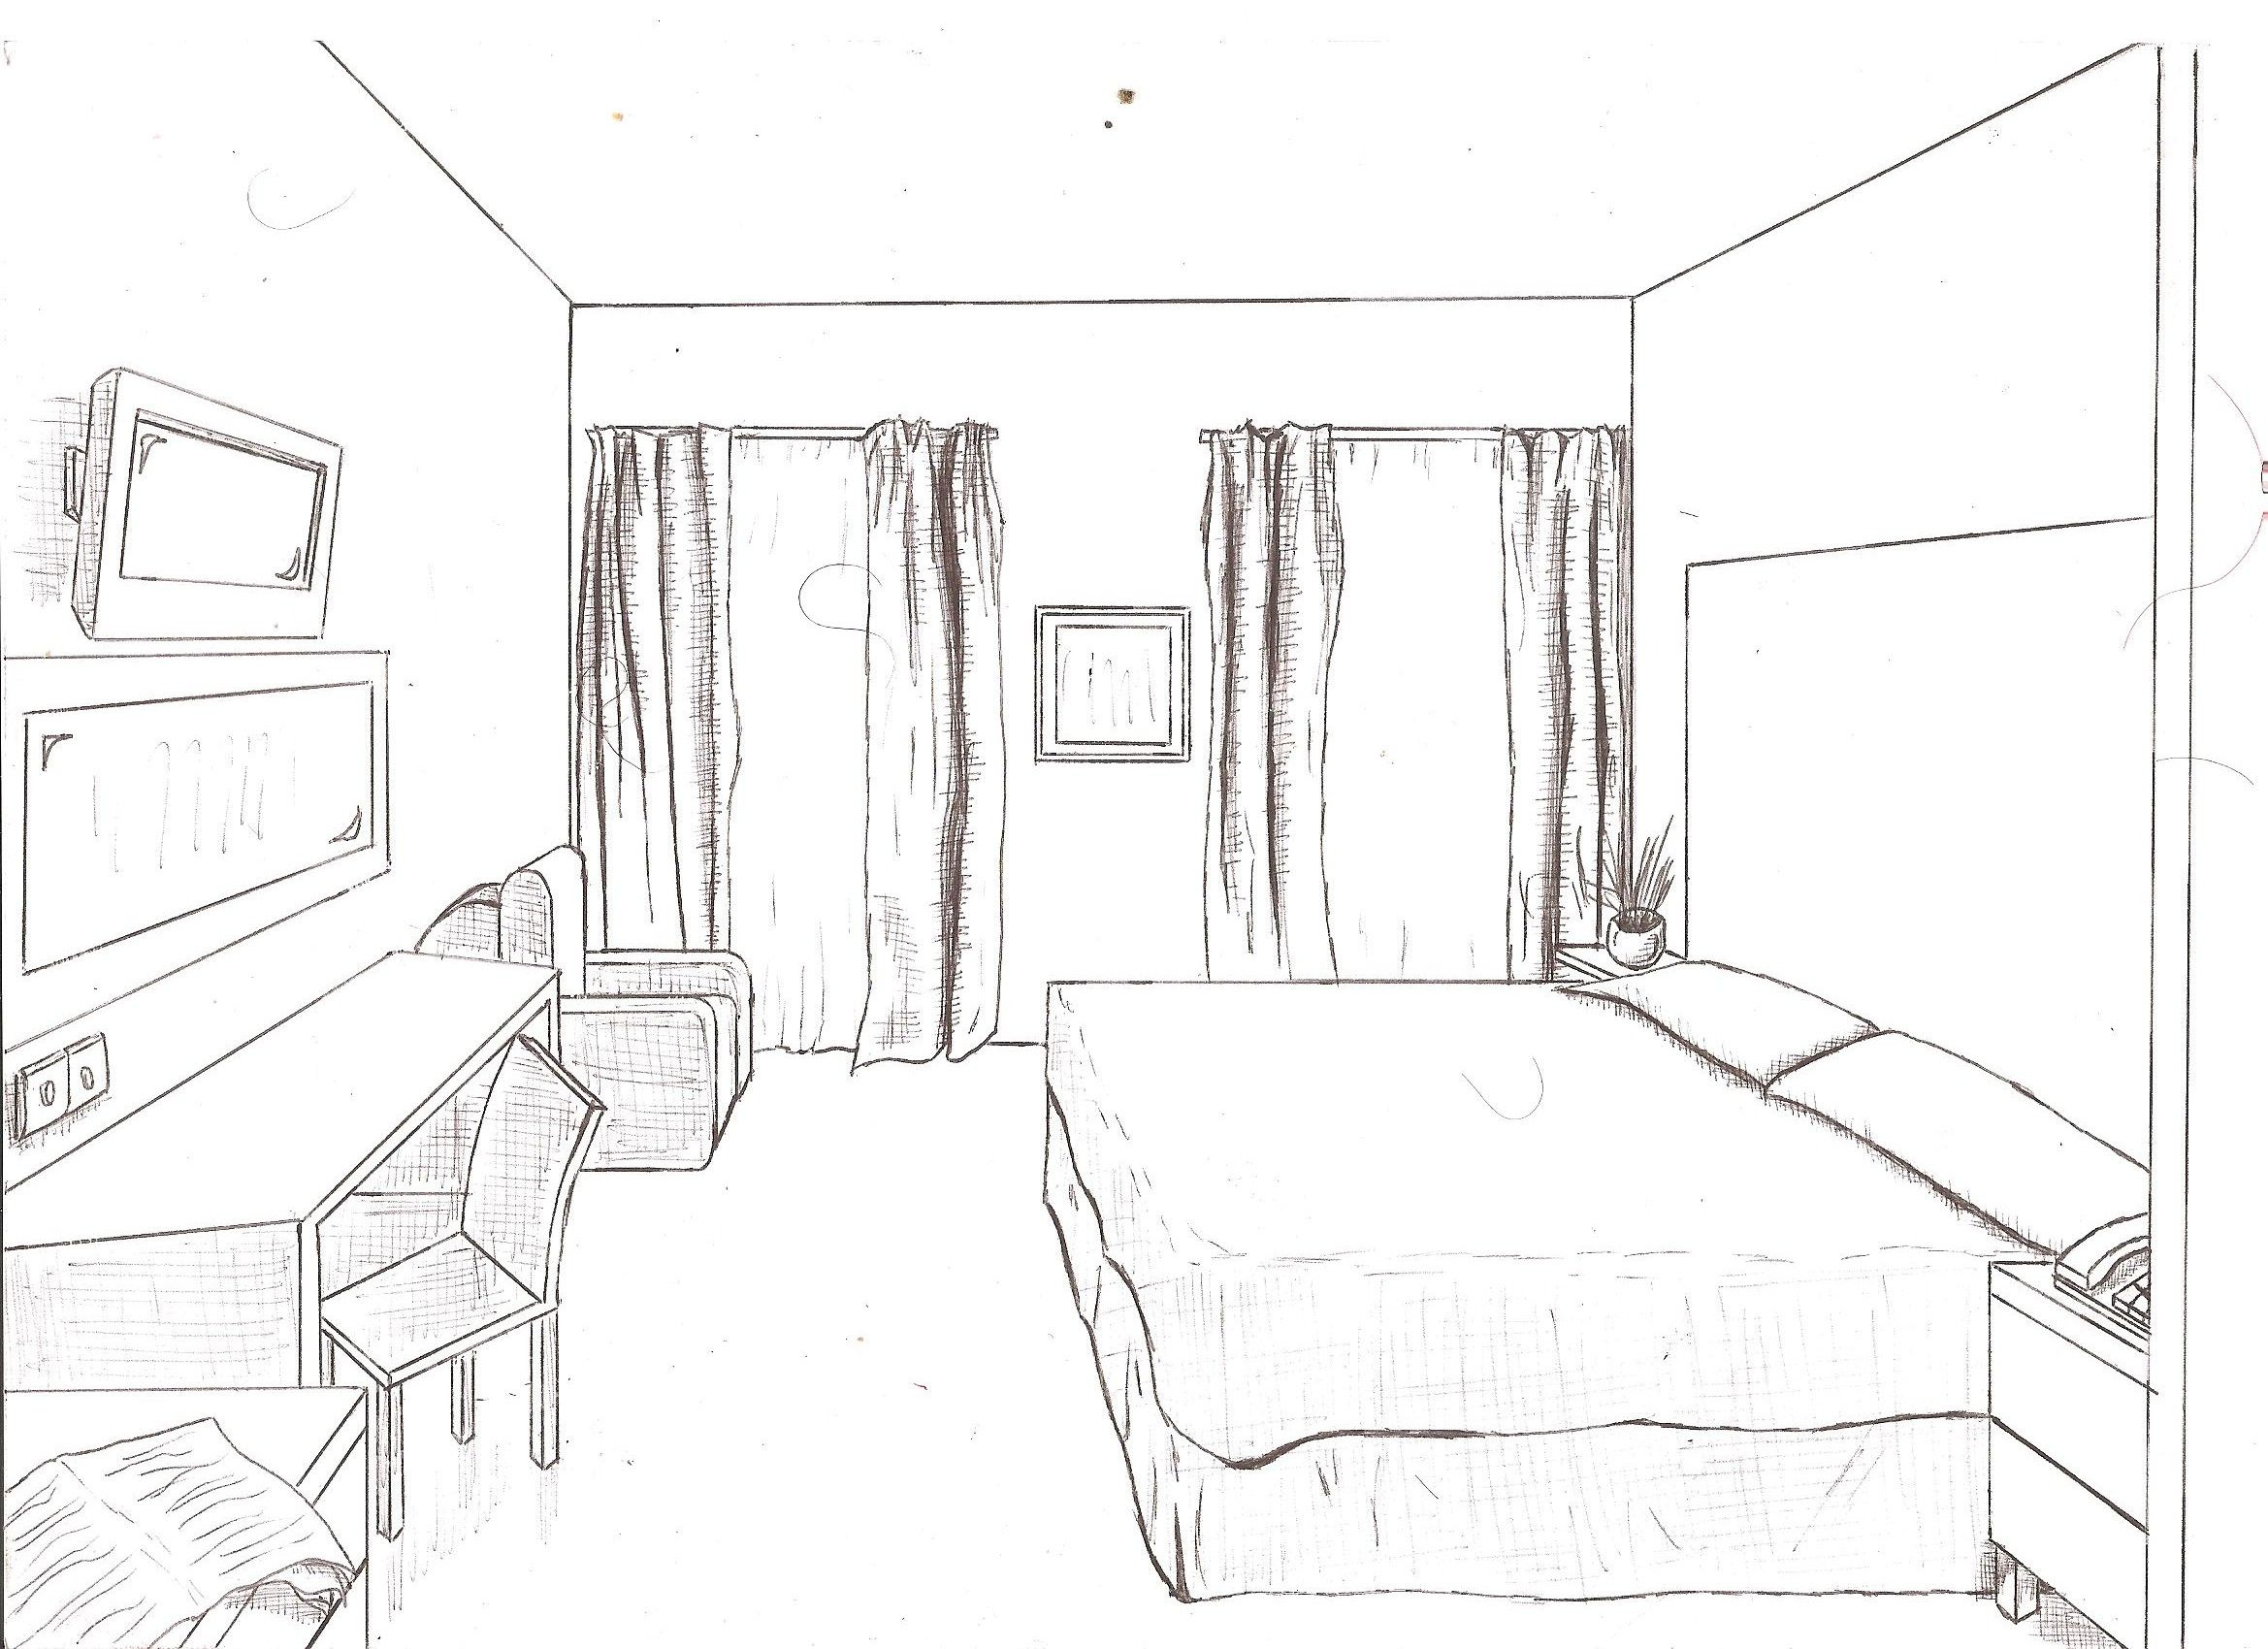 1 point of view room in drawing drawings from floor plans to 1 and 2 point perspective Master bedroom plan dwg